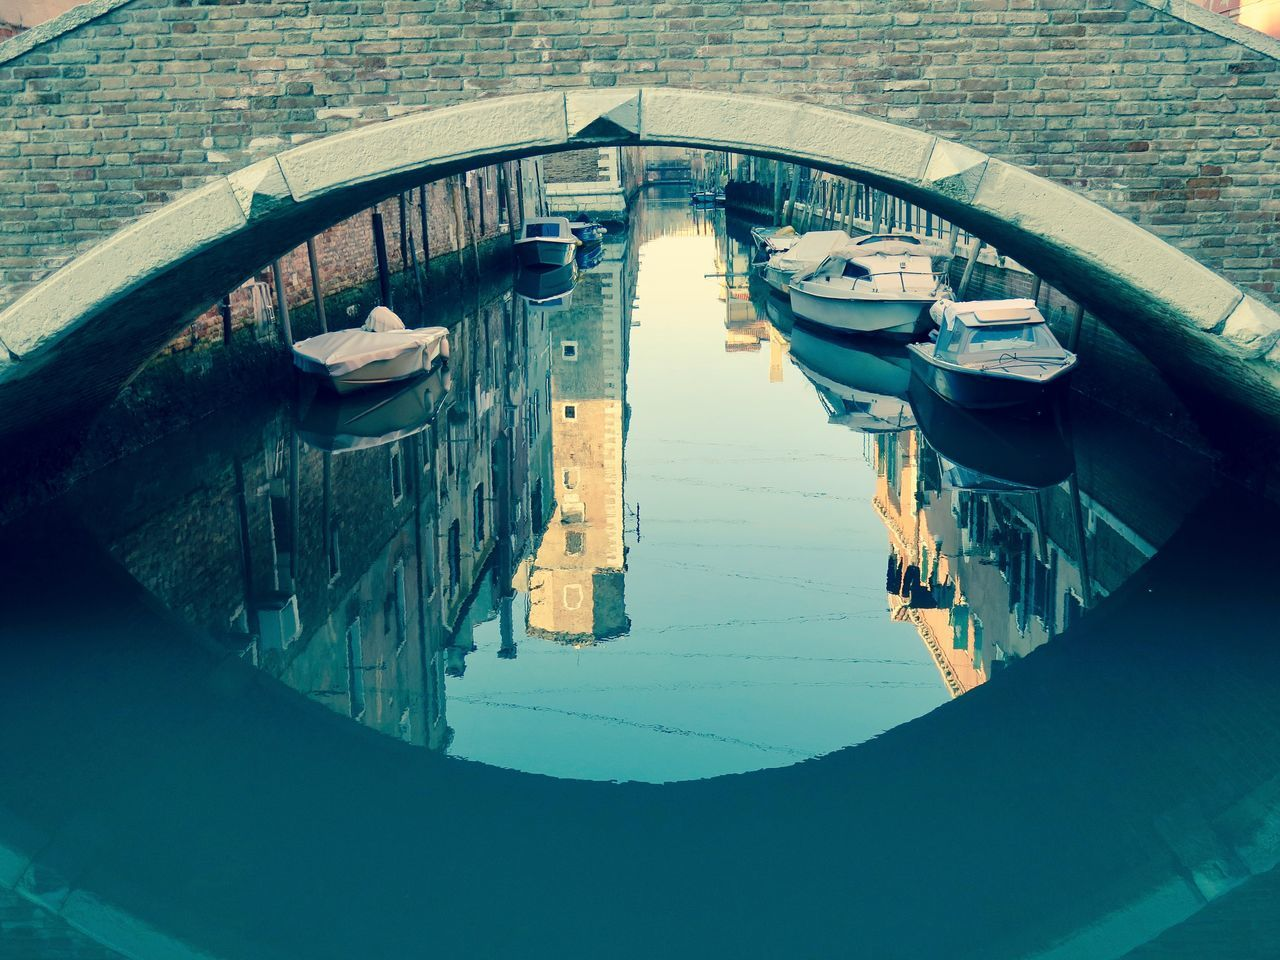 Architecture Canal Day EyeEm Gallery Gondola - Traditional Boat High Angle View Holiday Italia Italy Holidays Landscape_Collection Nautical Vessel One Man Only One Person Only Men Outdoors People Reflection Urban Landscape Venezia Venezia #venice Venice Water Water Reflections